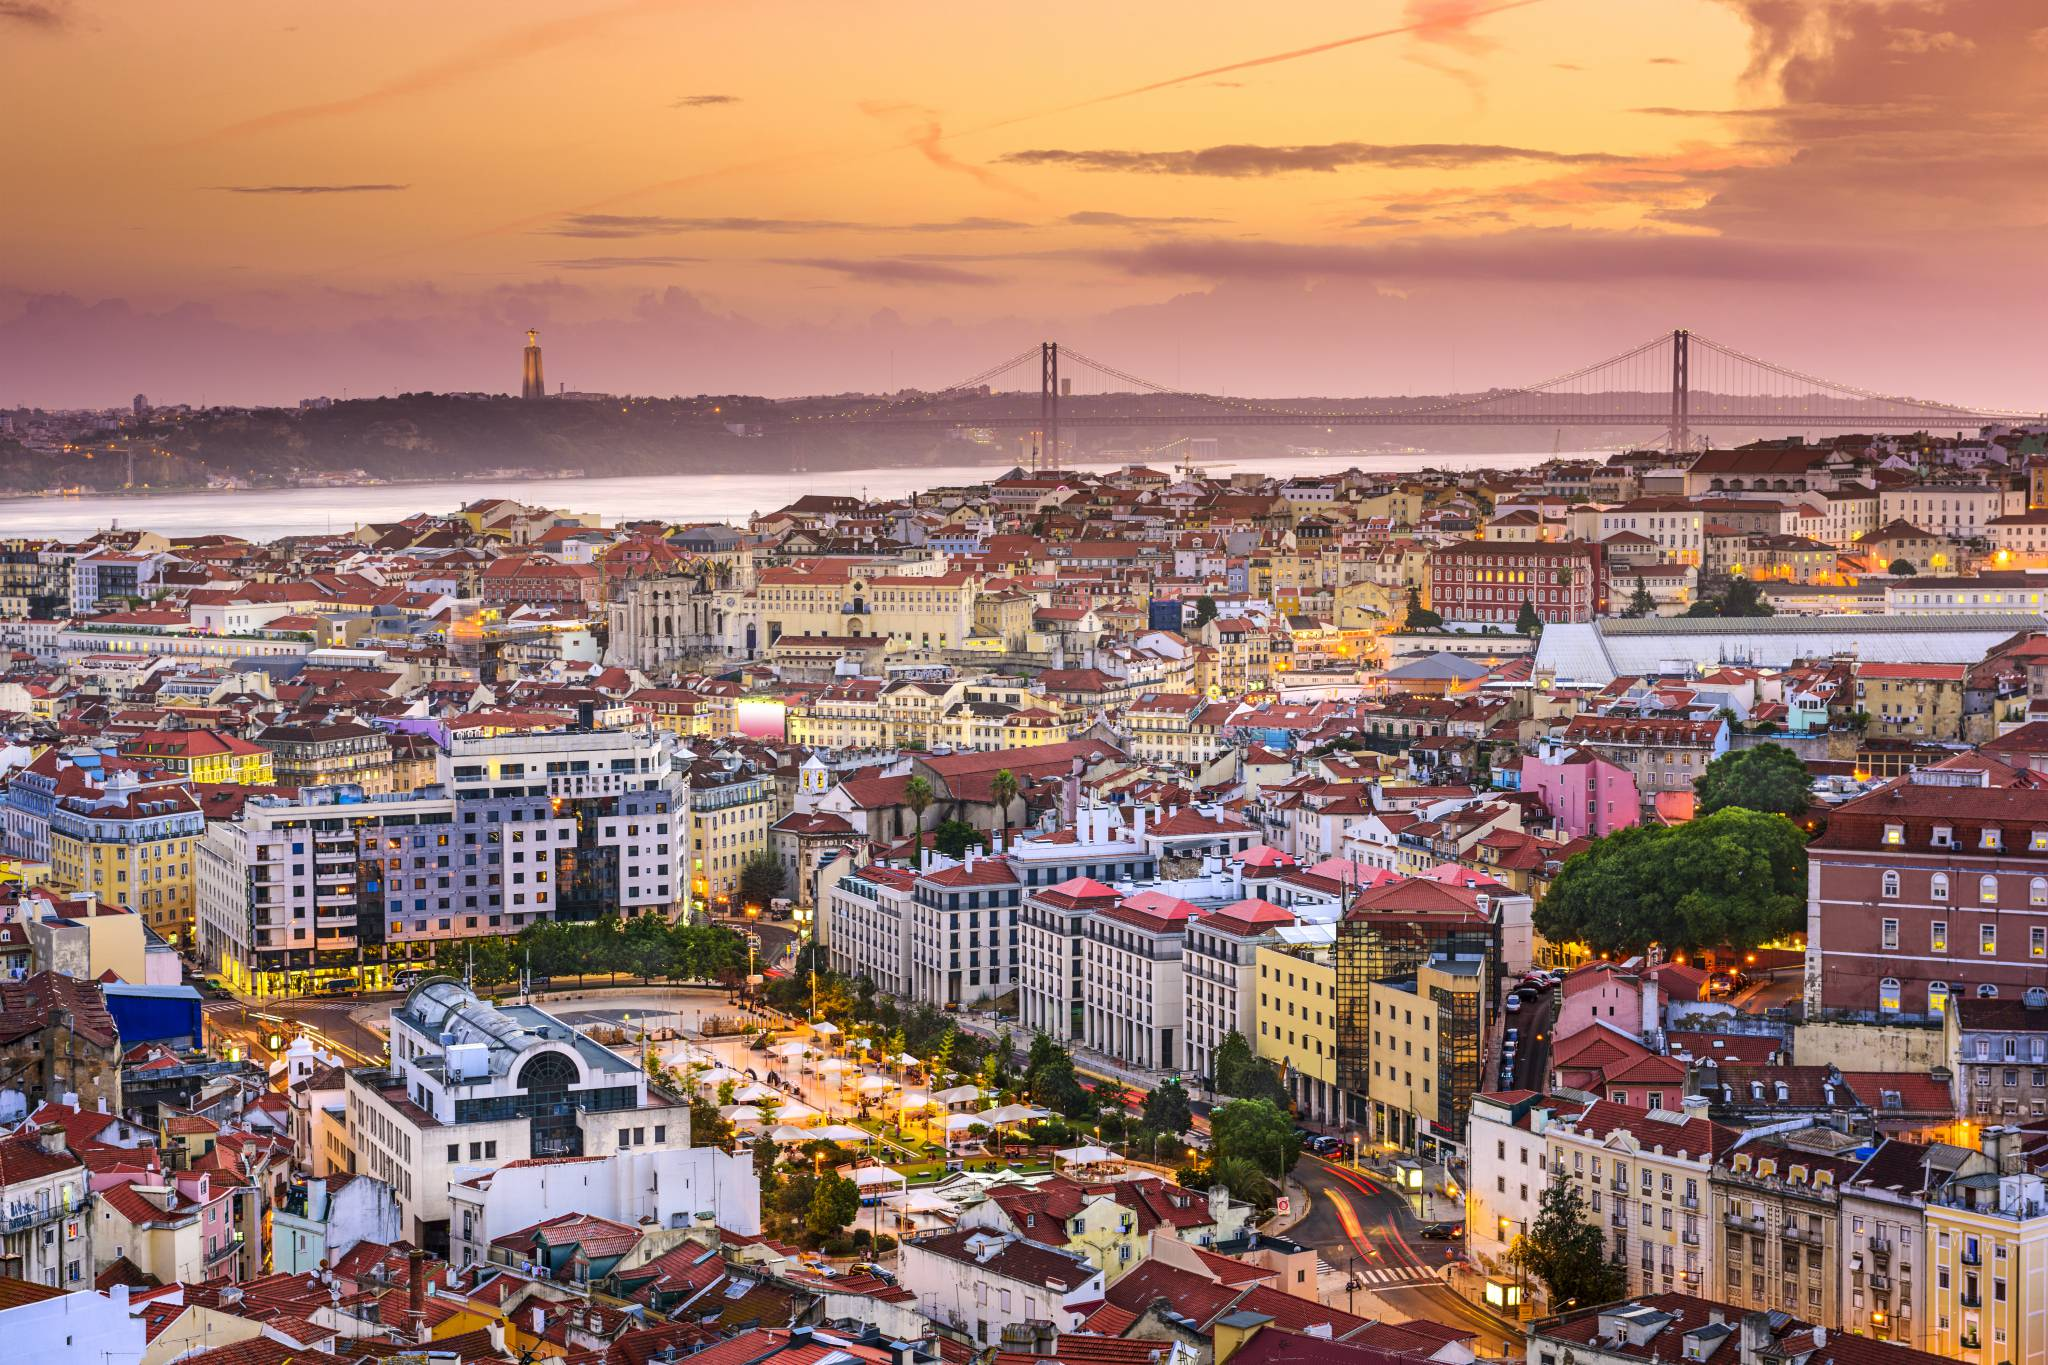 WOW! Lisbon skyline at sunset